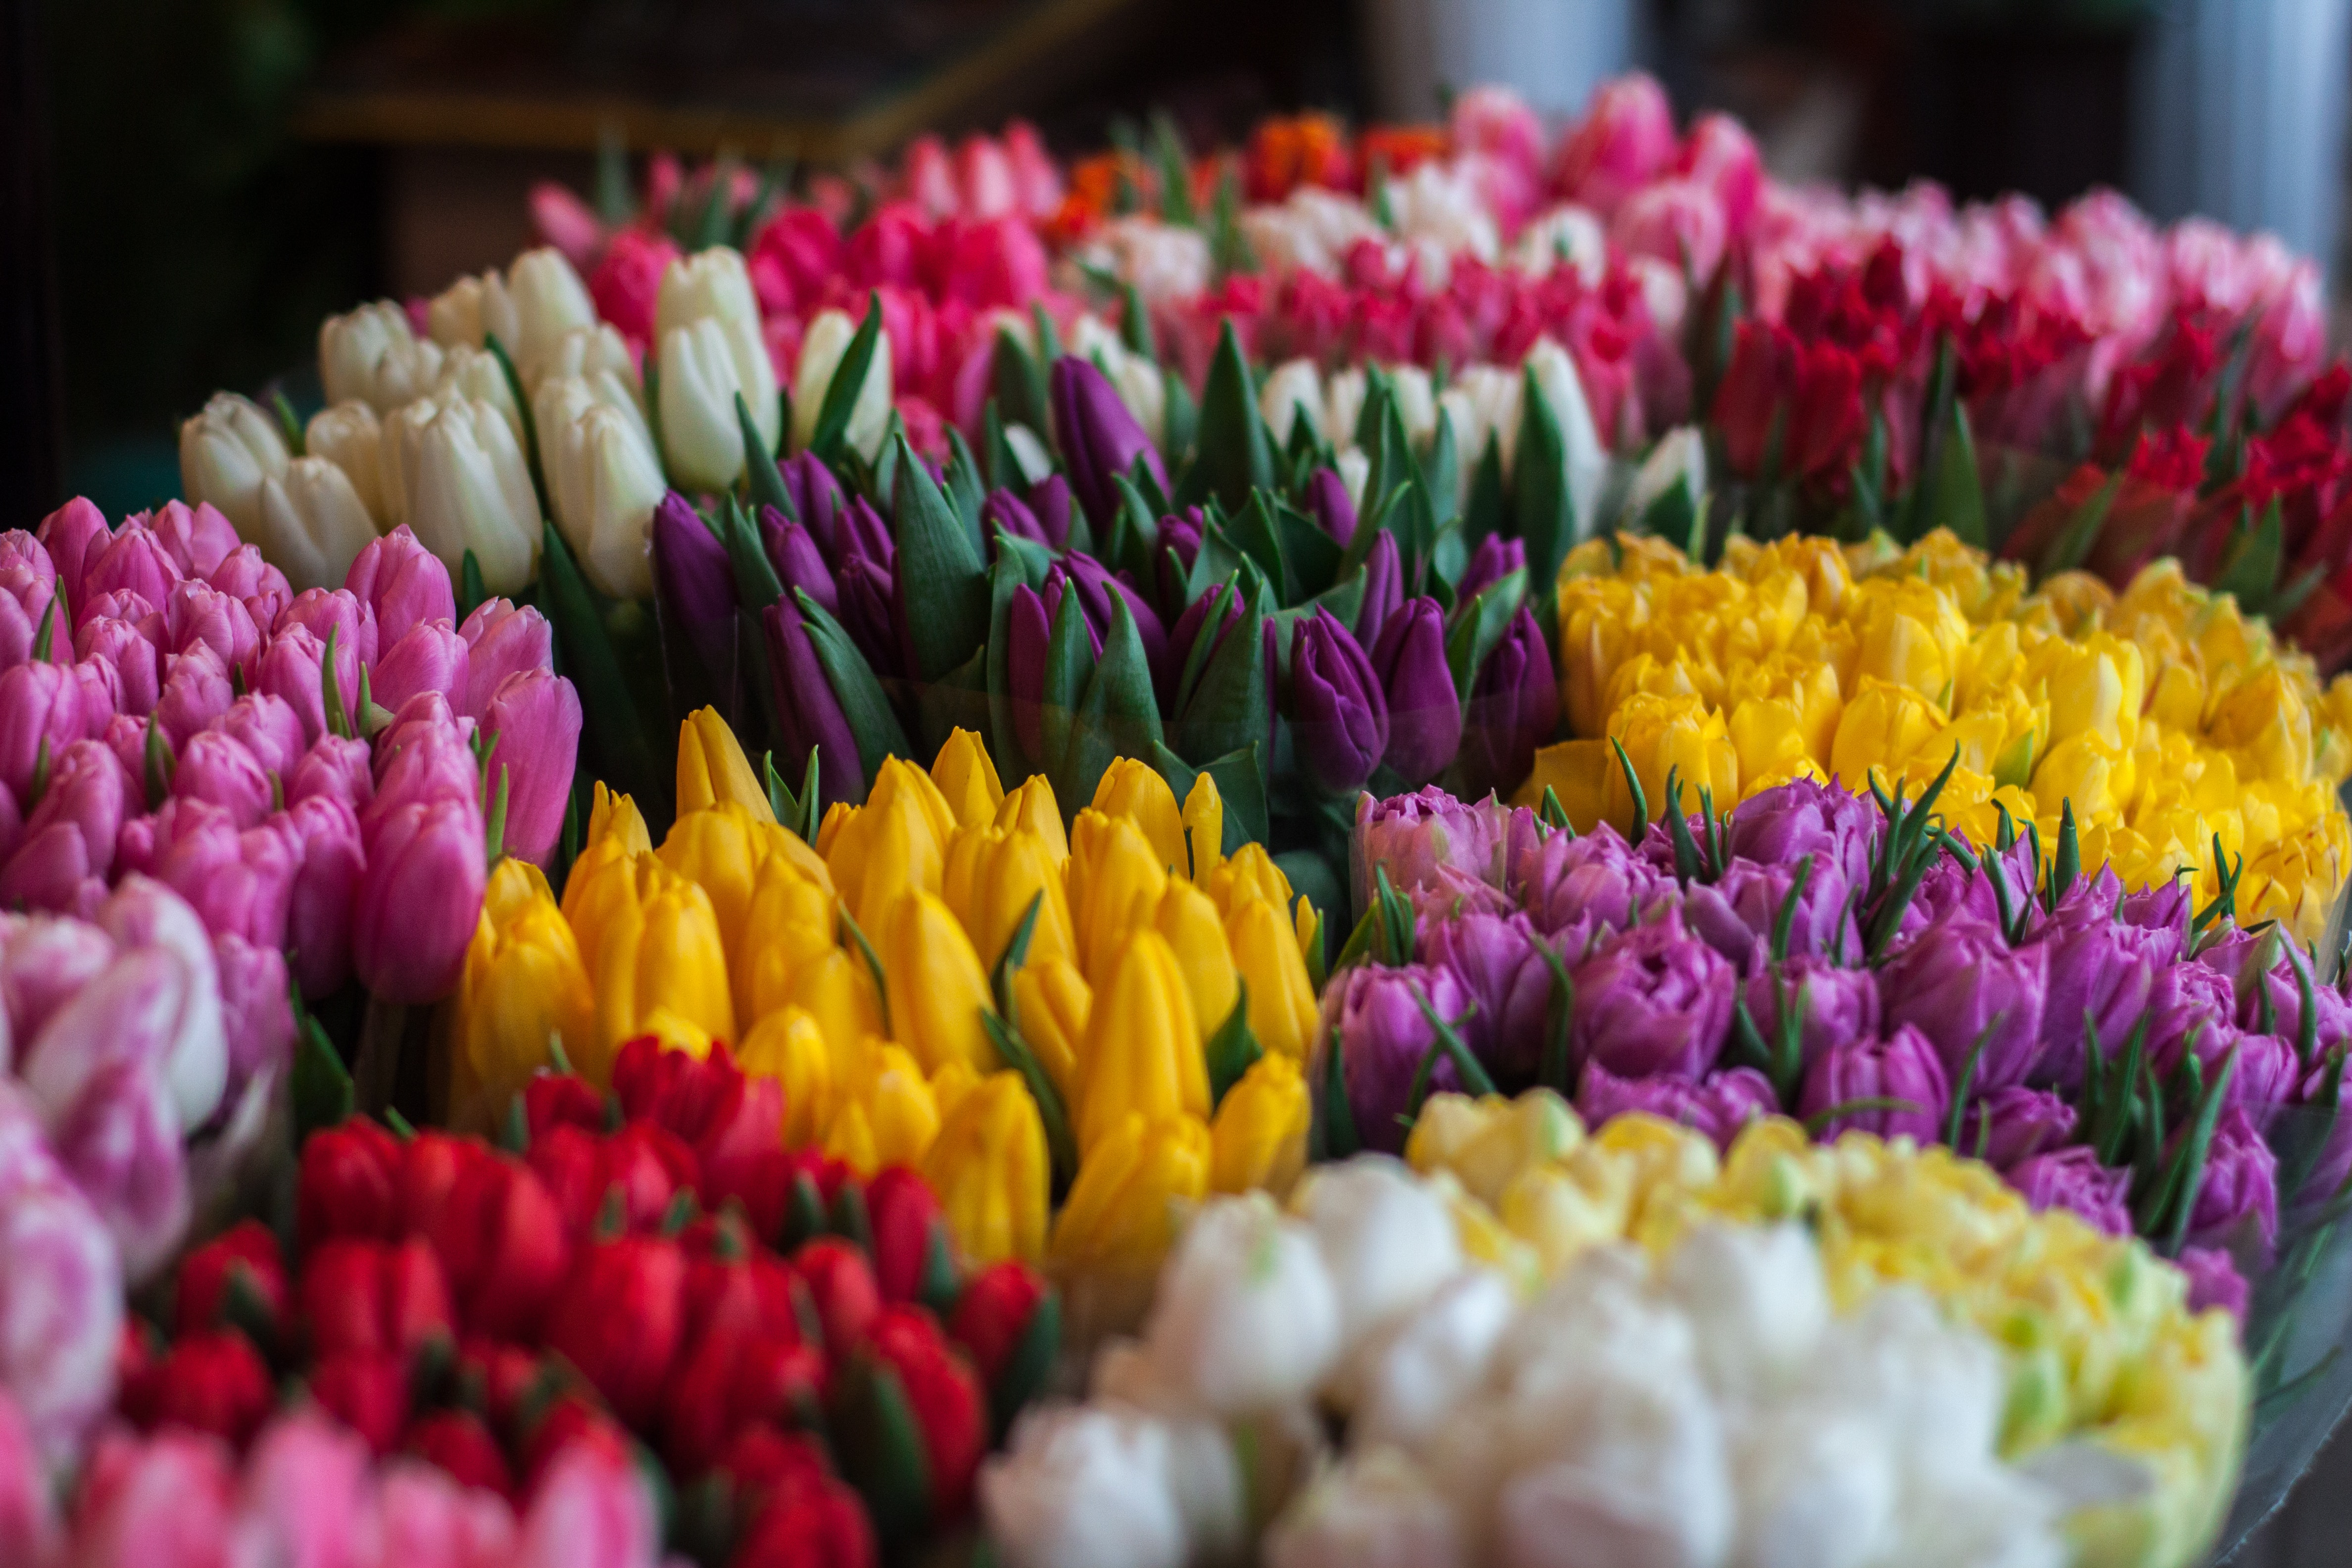 Close-up of Multi Colored Tulips, Blossom, Red, White, Tulips, HQ Photo